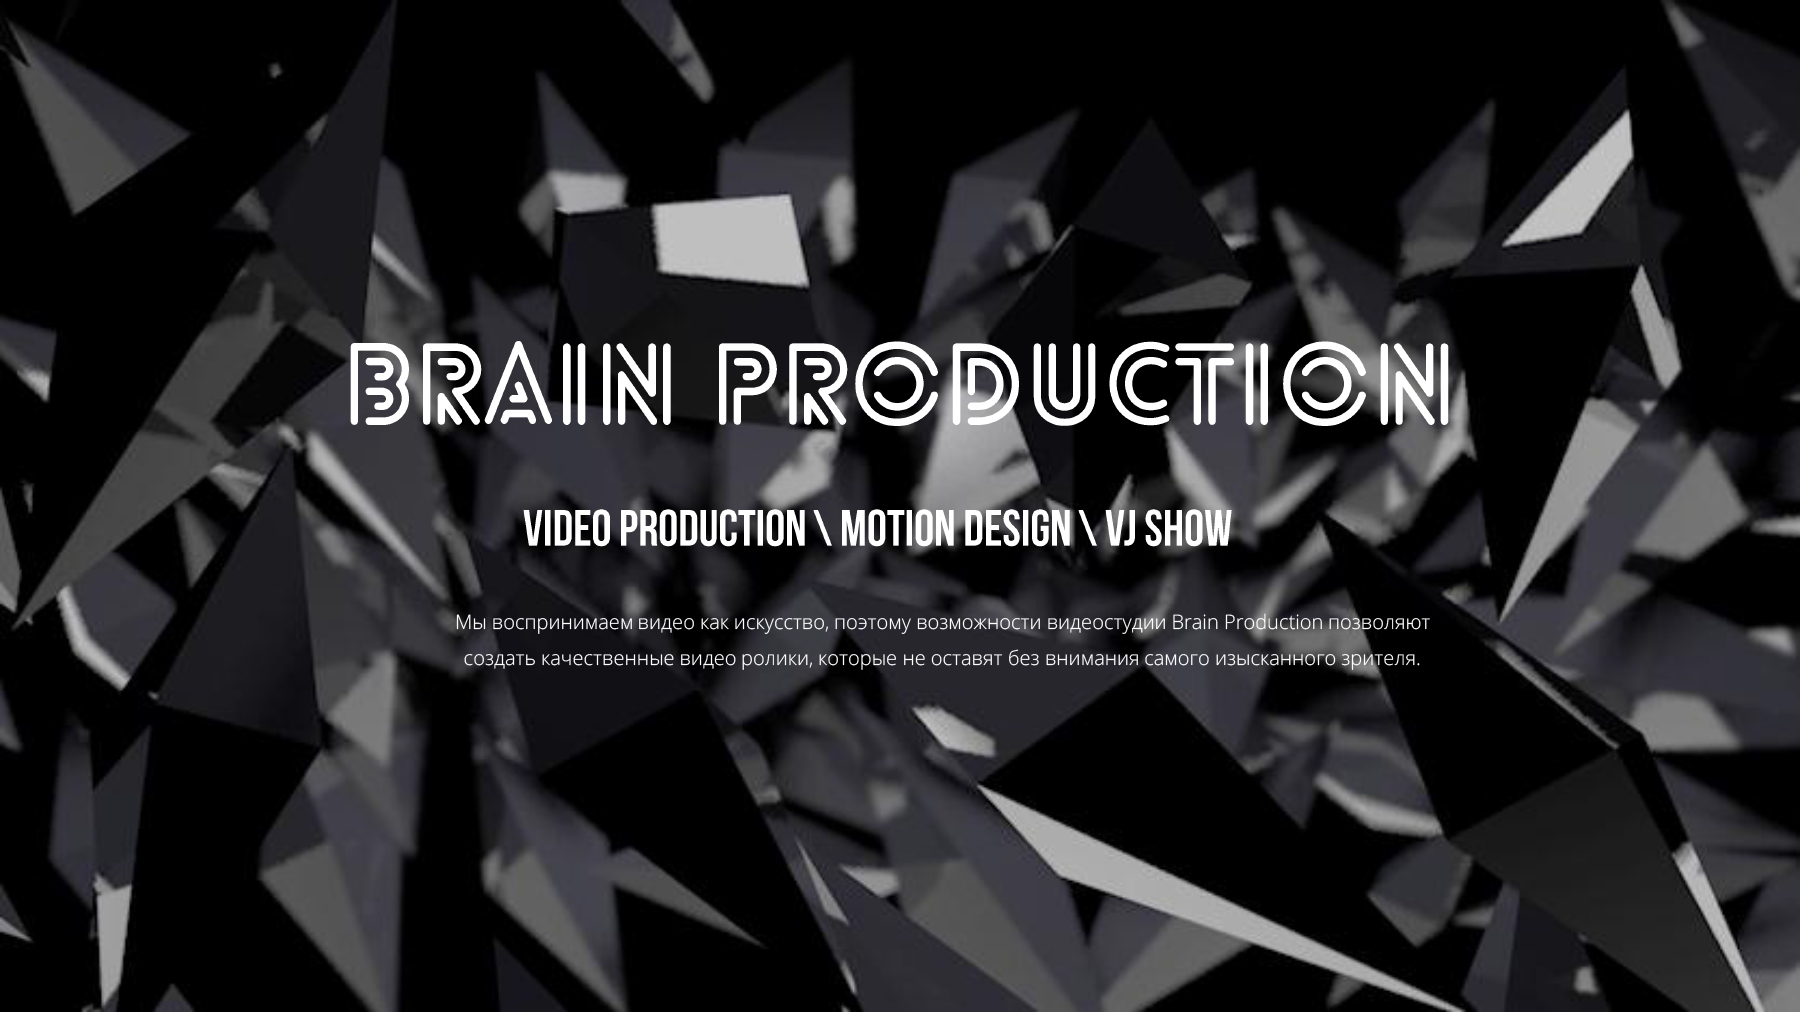 BRAIN_VIDEO_PRODUCTION_motion_design_vj_show